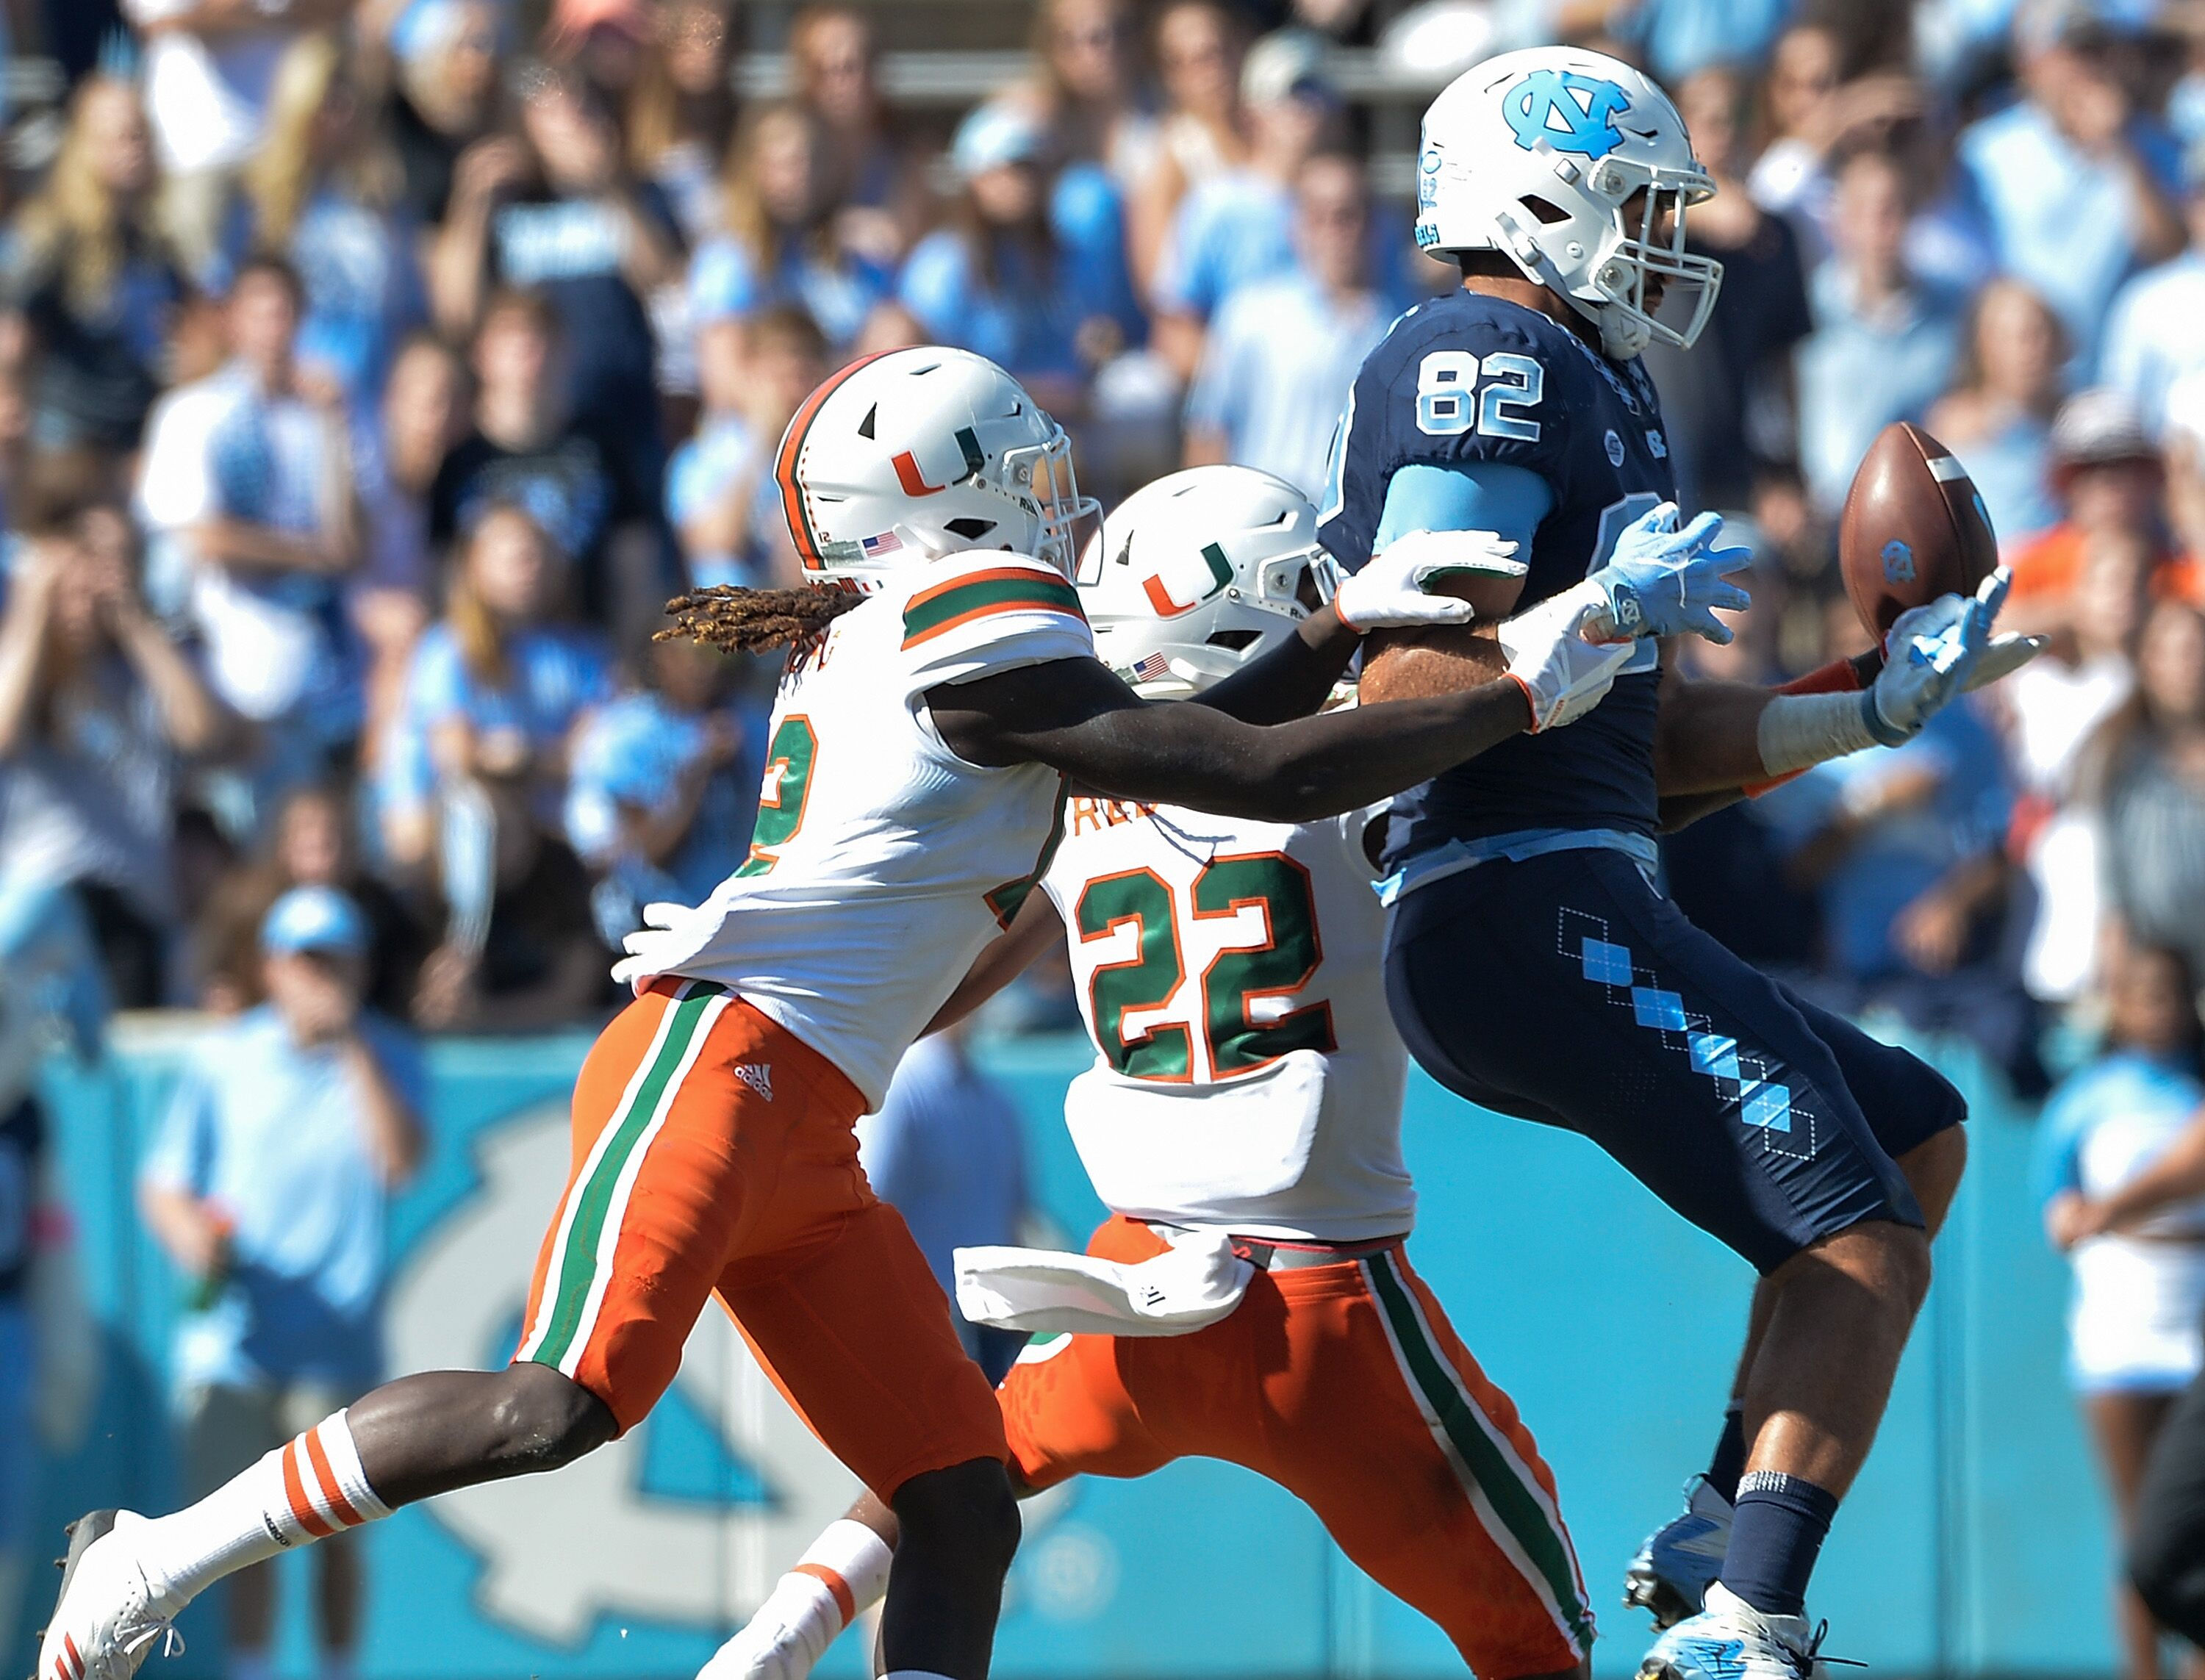 Miami football has no changes to depth chart